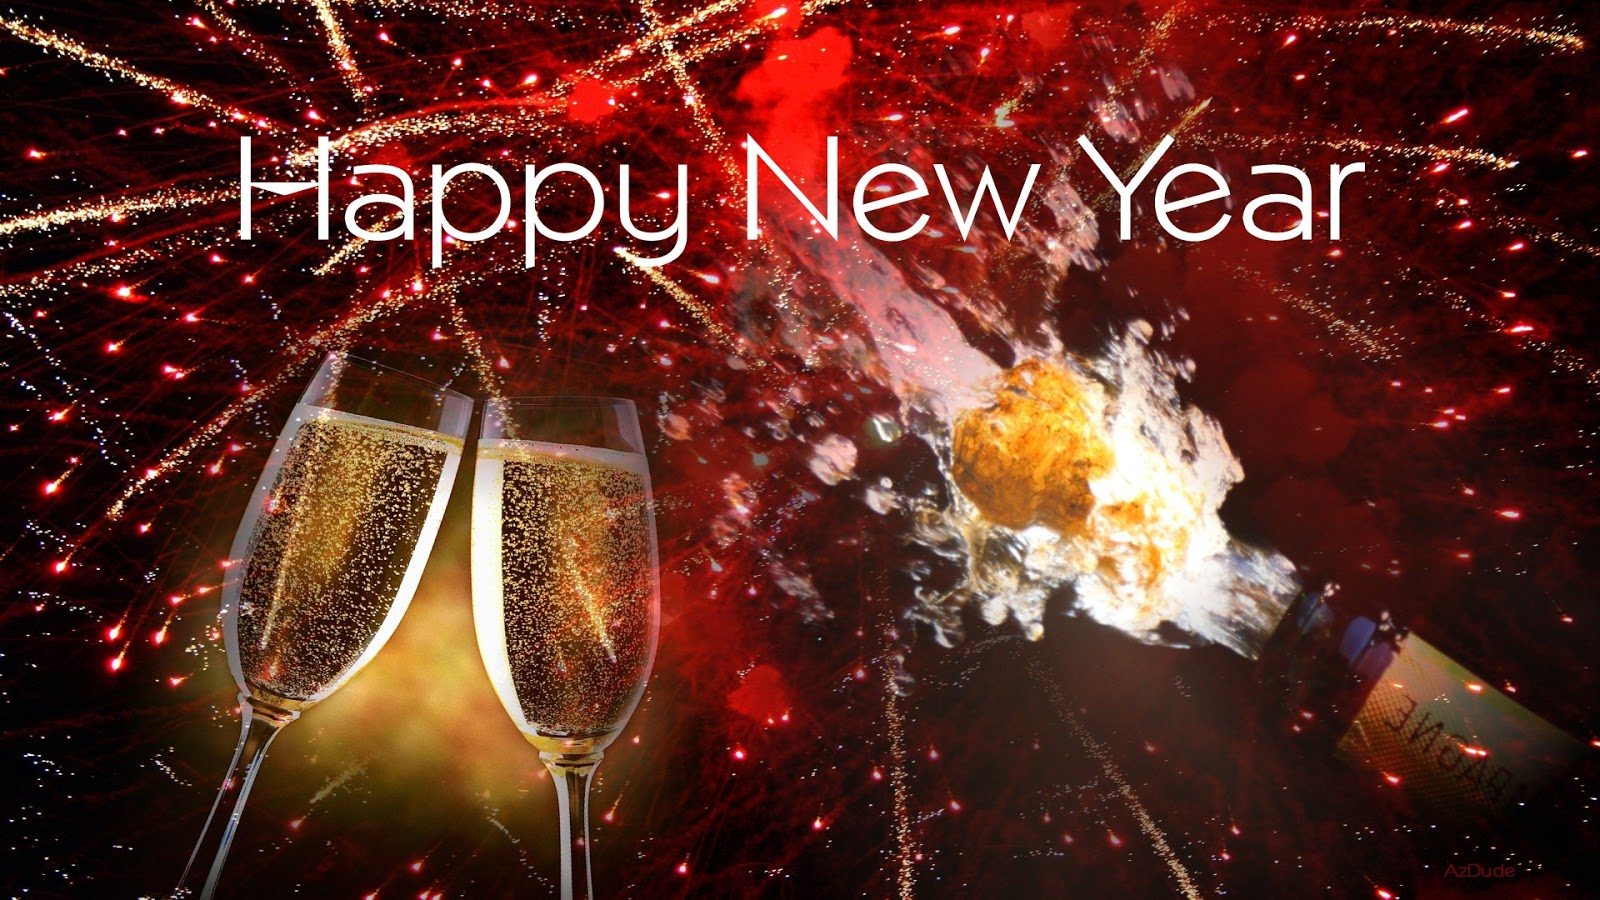 Happy new year 2018 images wallpapers picture messages happy new year images and greetings m4hsunfo